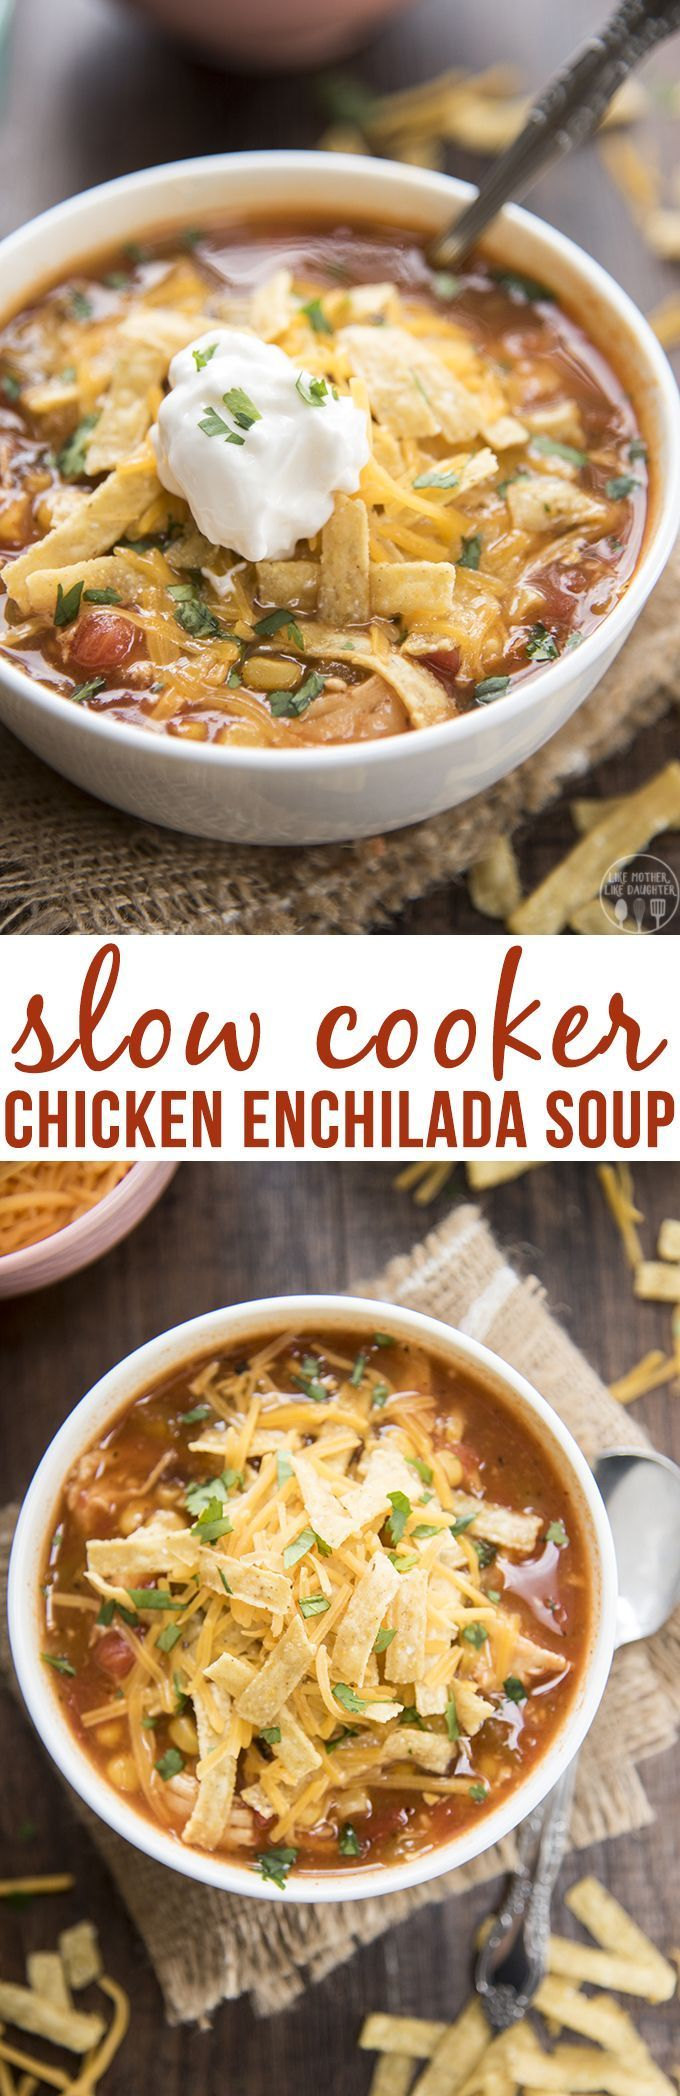 Slow Cooker Chicken Enchilada Soup - This soup is packed full of flavor, with…